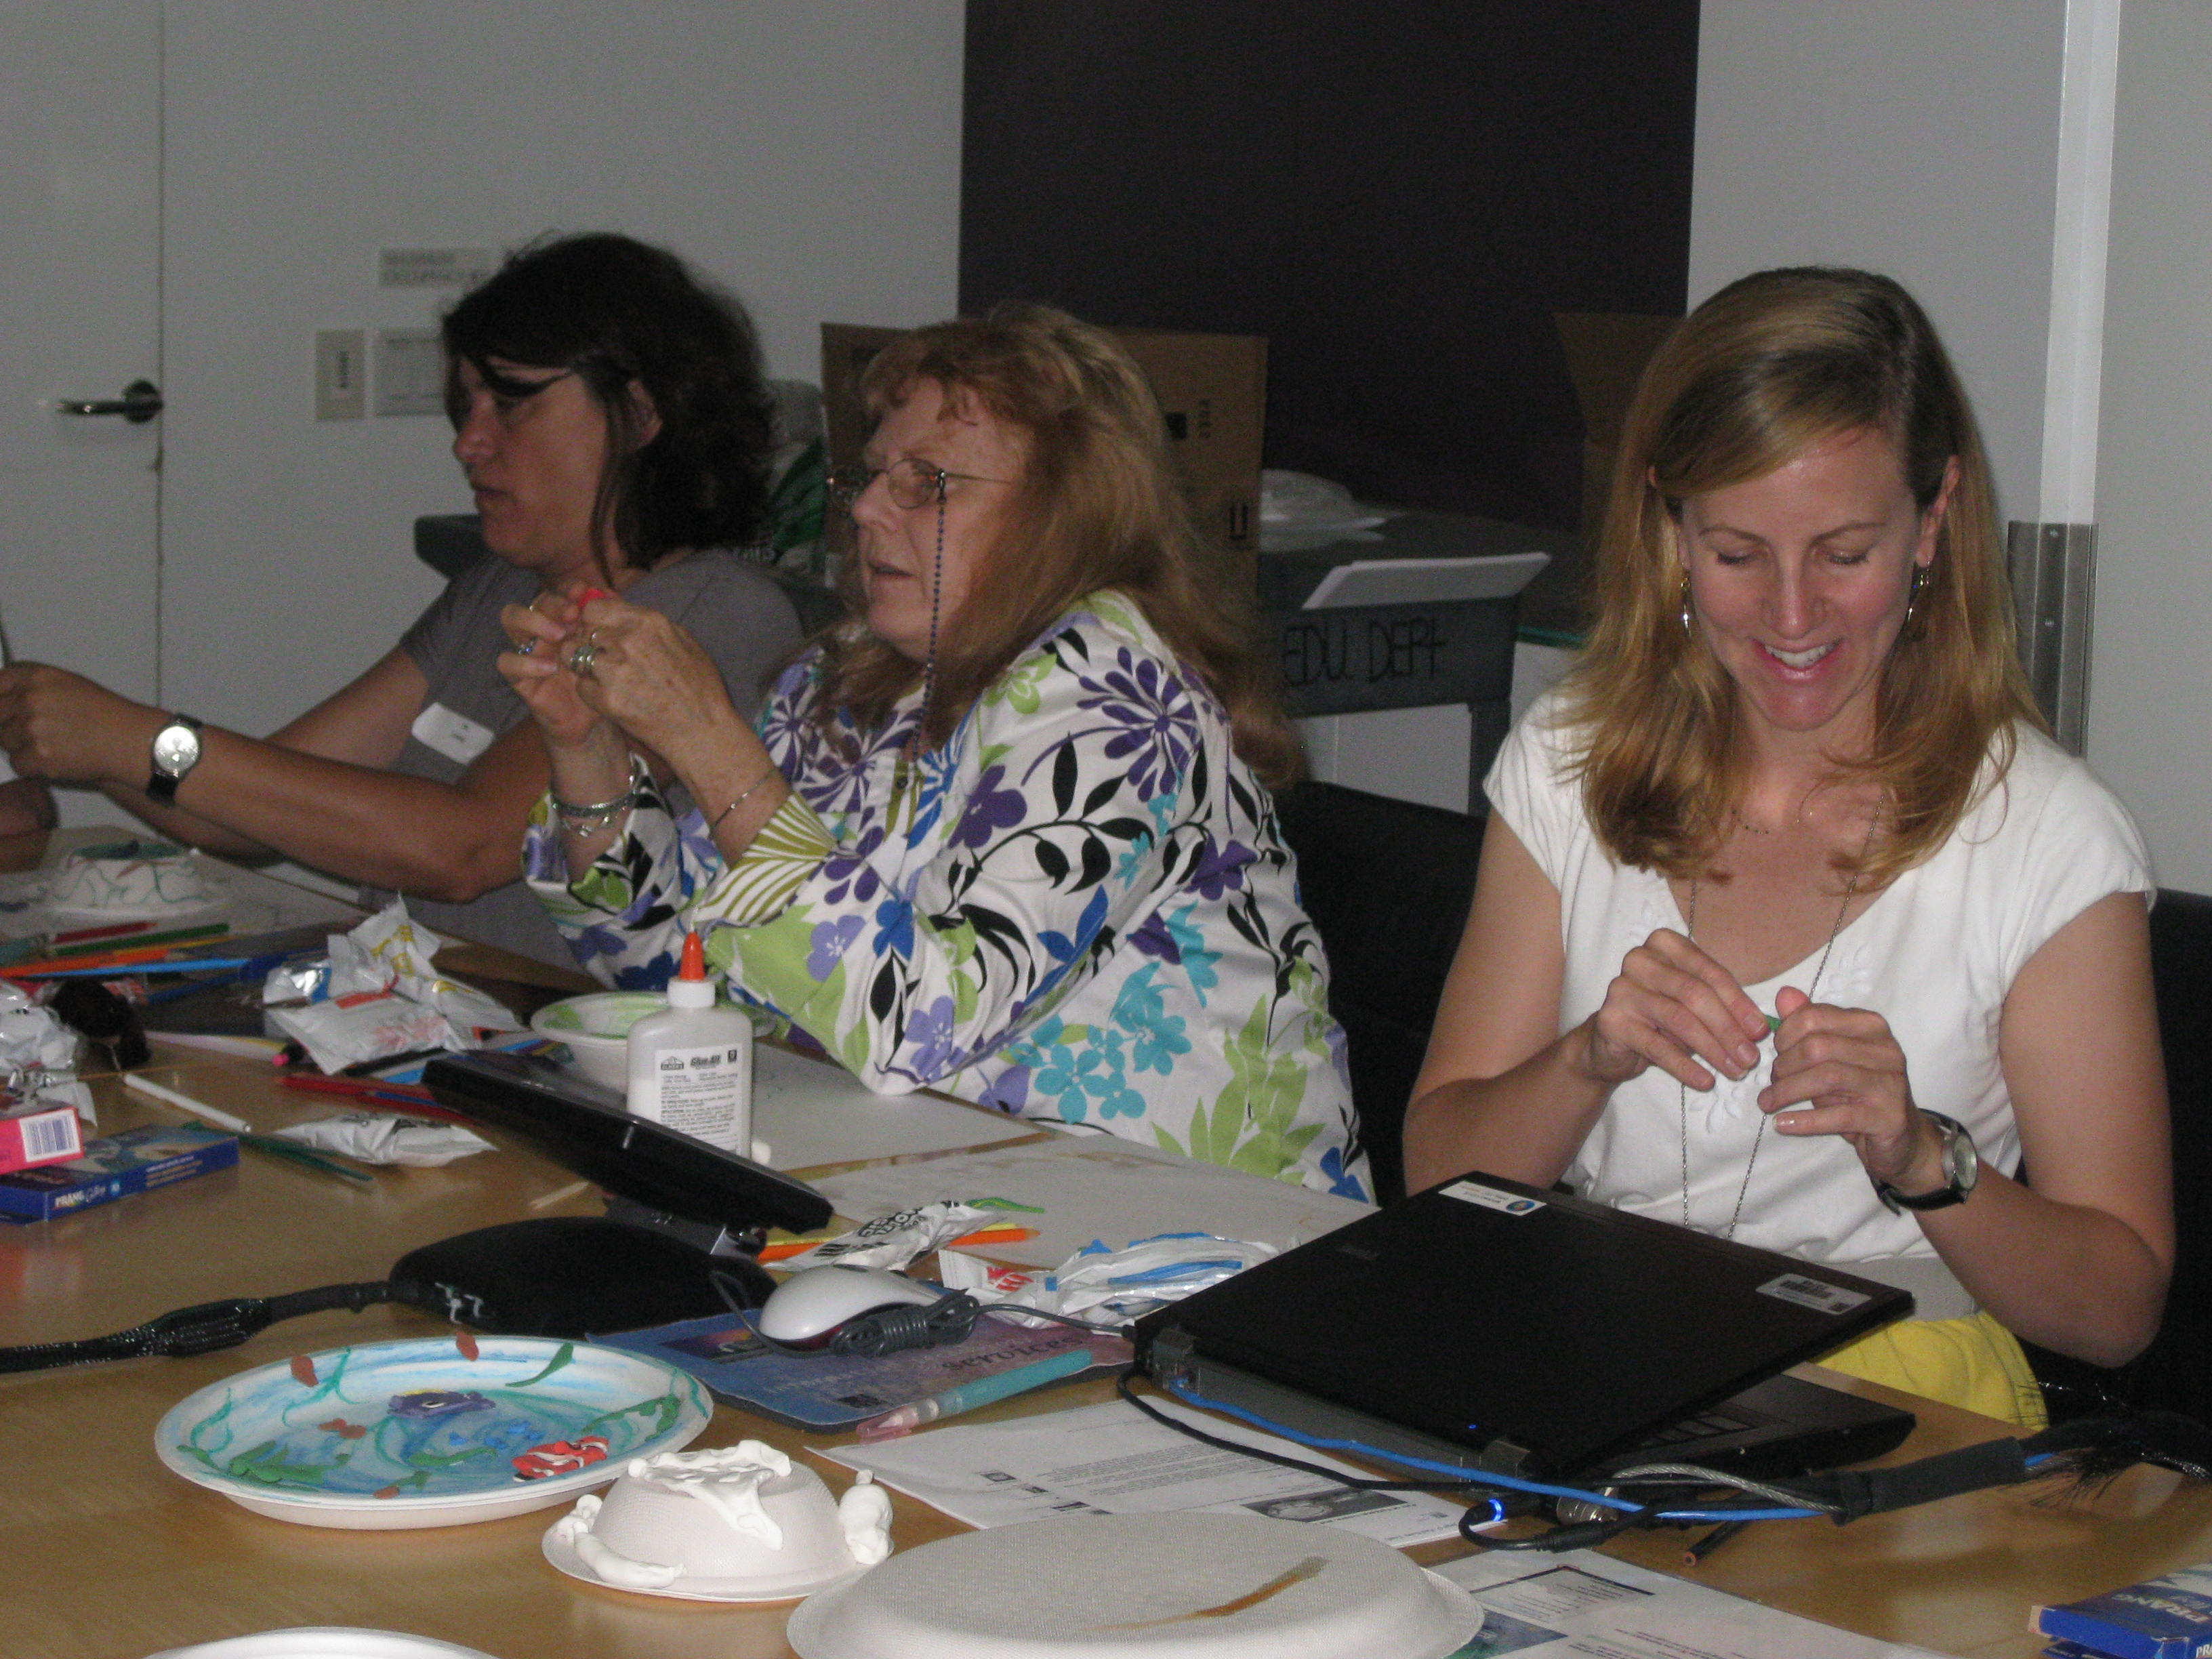 Museum educator Kelly Williams leads an activity on creating decorative plates based on a 16th-century dish and an 18th-century centerpiece depicting ingredients for a stew.